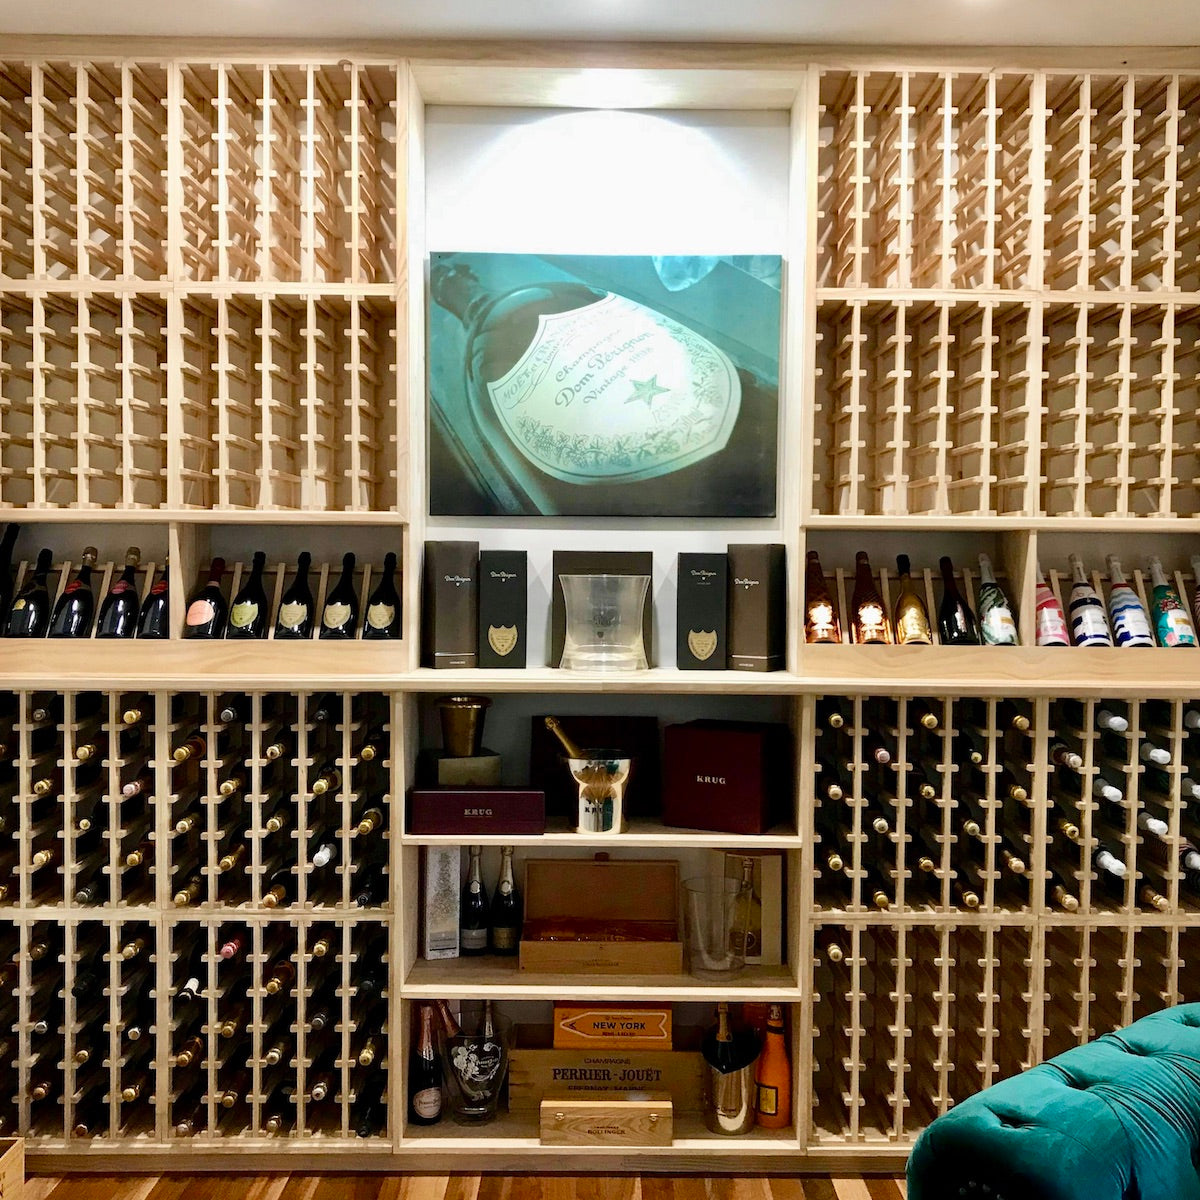 Wine Stash Cellar Kits - Made from 100% Sustainably sourced New Zealand Timber. Assembled by hand here in Australia. Available in a range of different wine rack sizes and styles and colours.